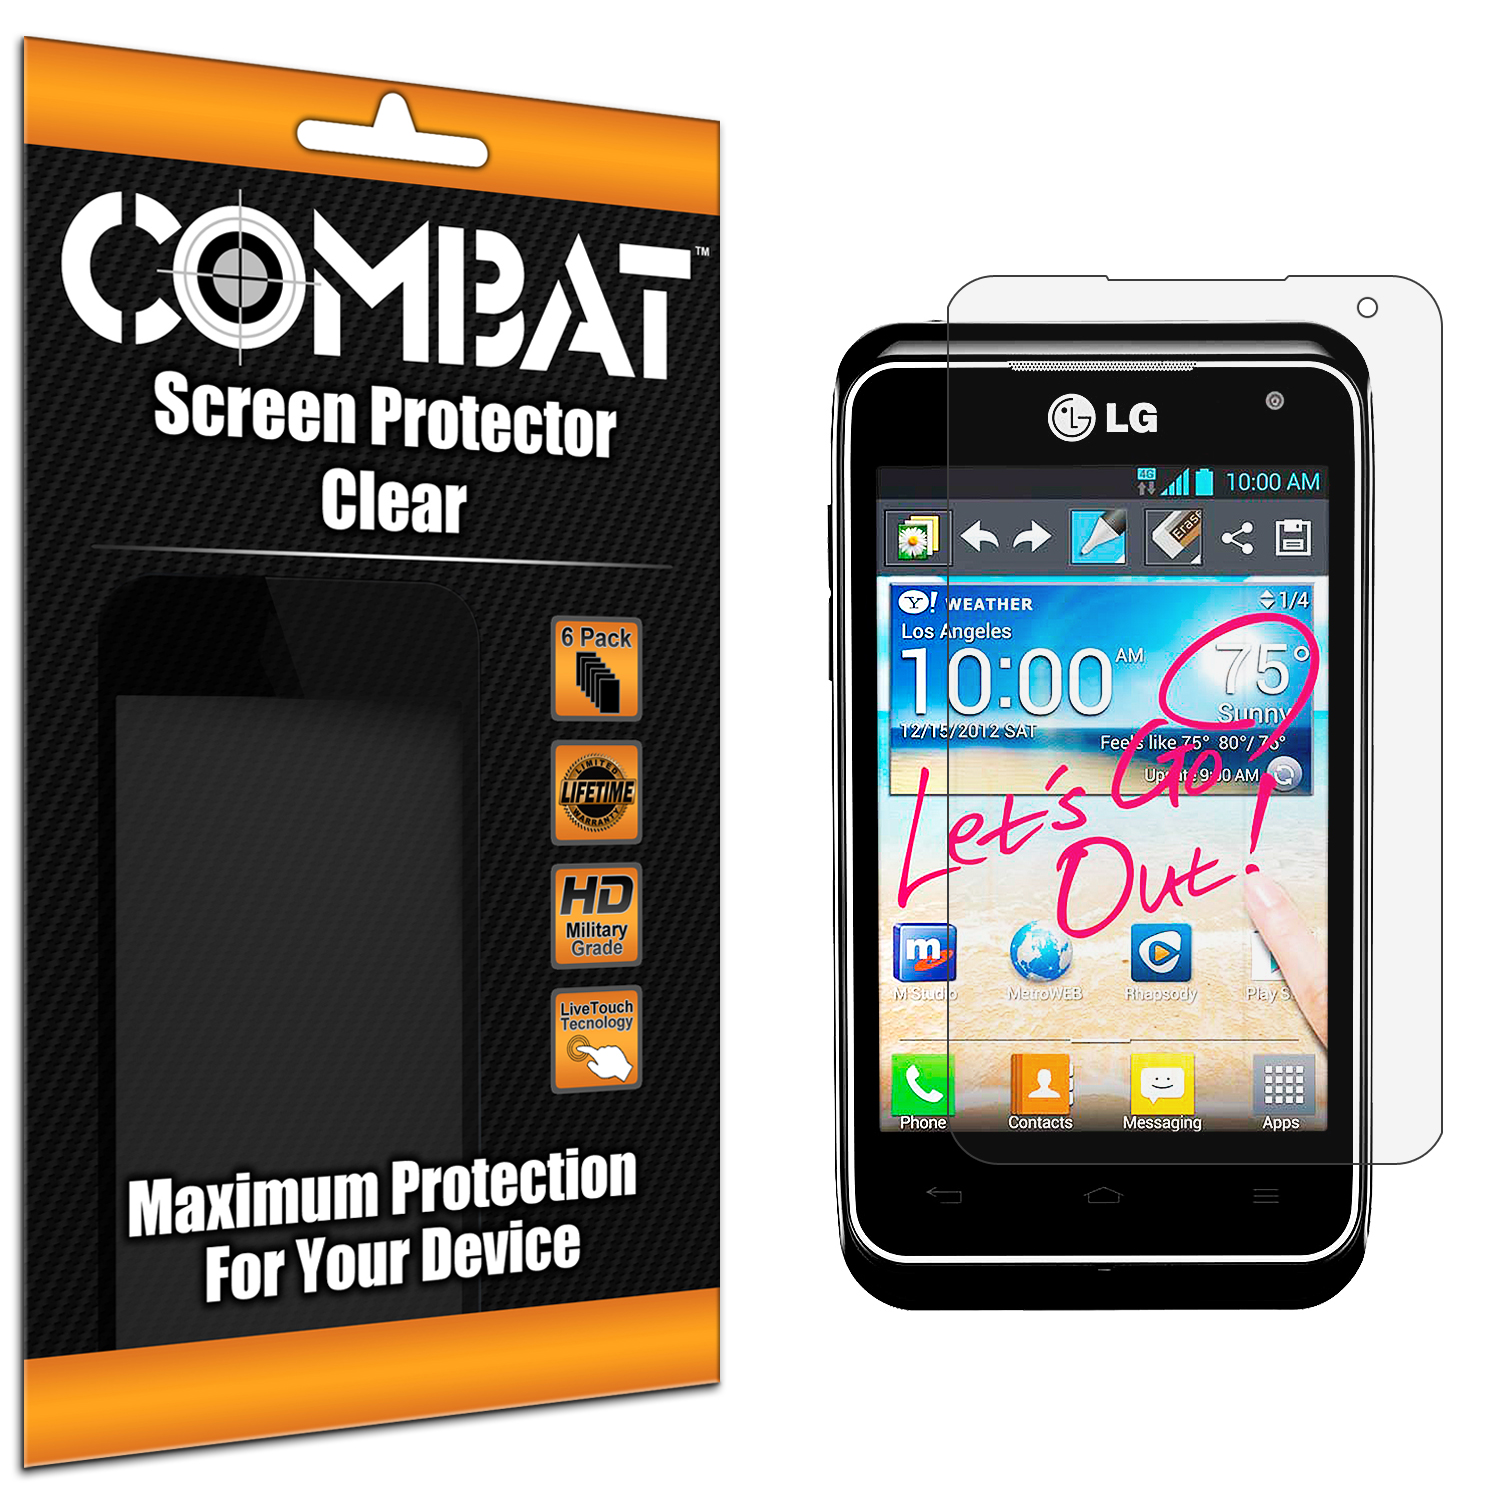 LG Motion MS770 Combat 6 Pack HD Clear Screen Protector